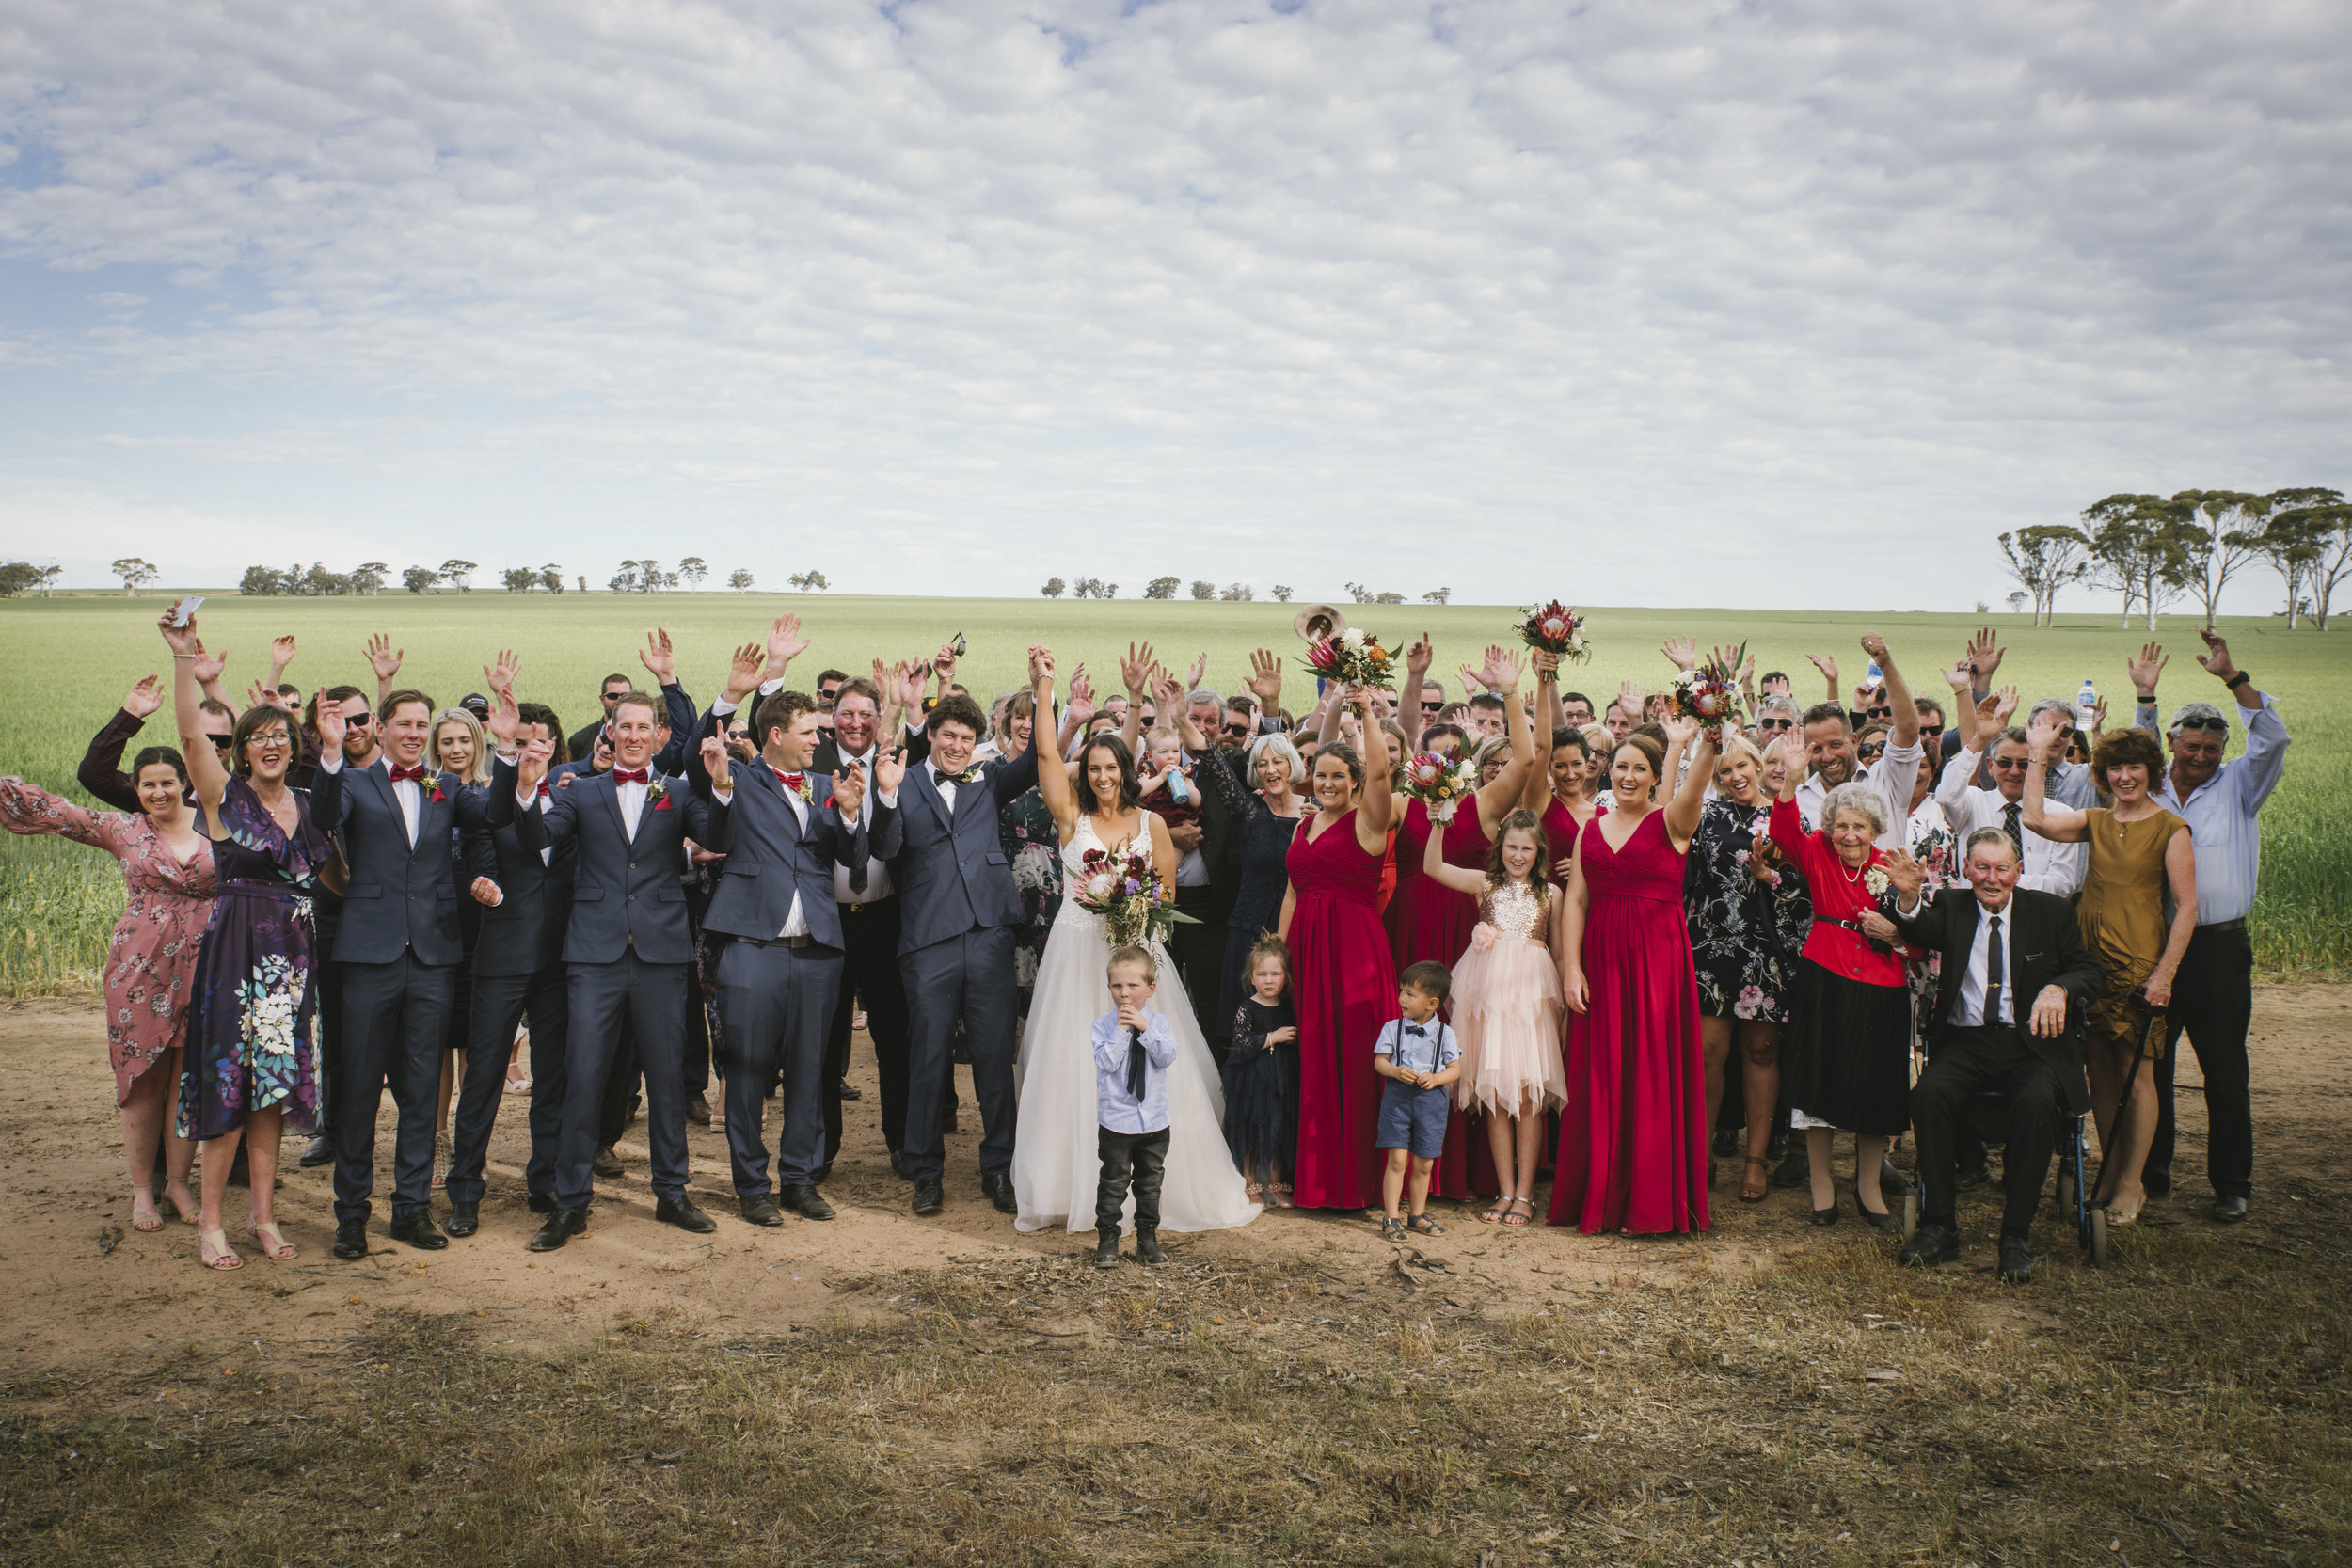 Angie Roe Photography Wheatbelt Avon Valley Farm Wedding (29).jpg